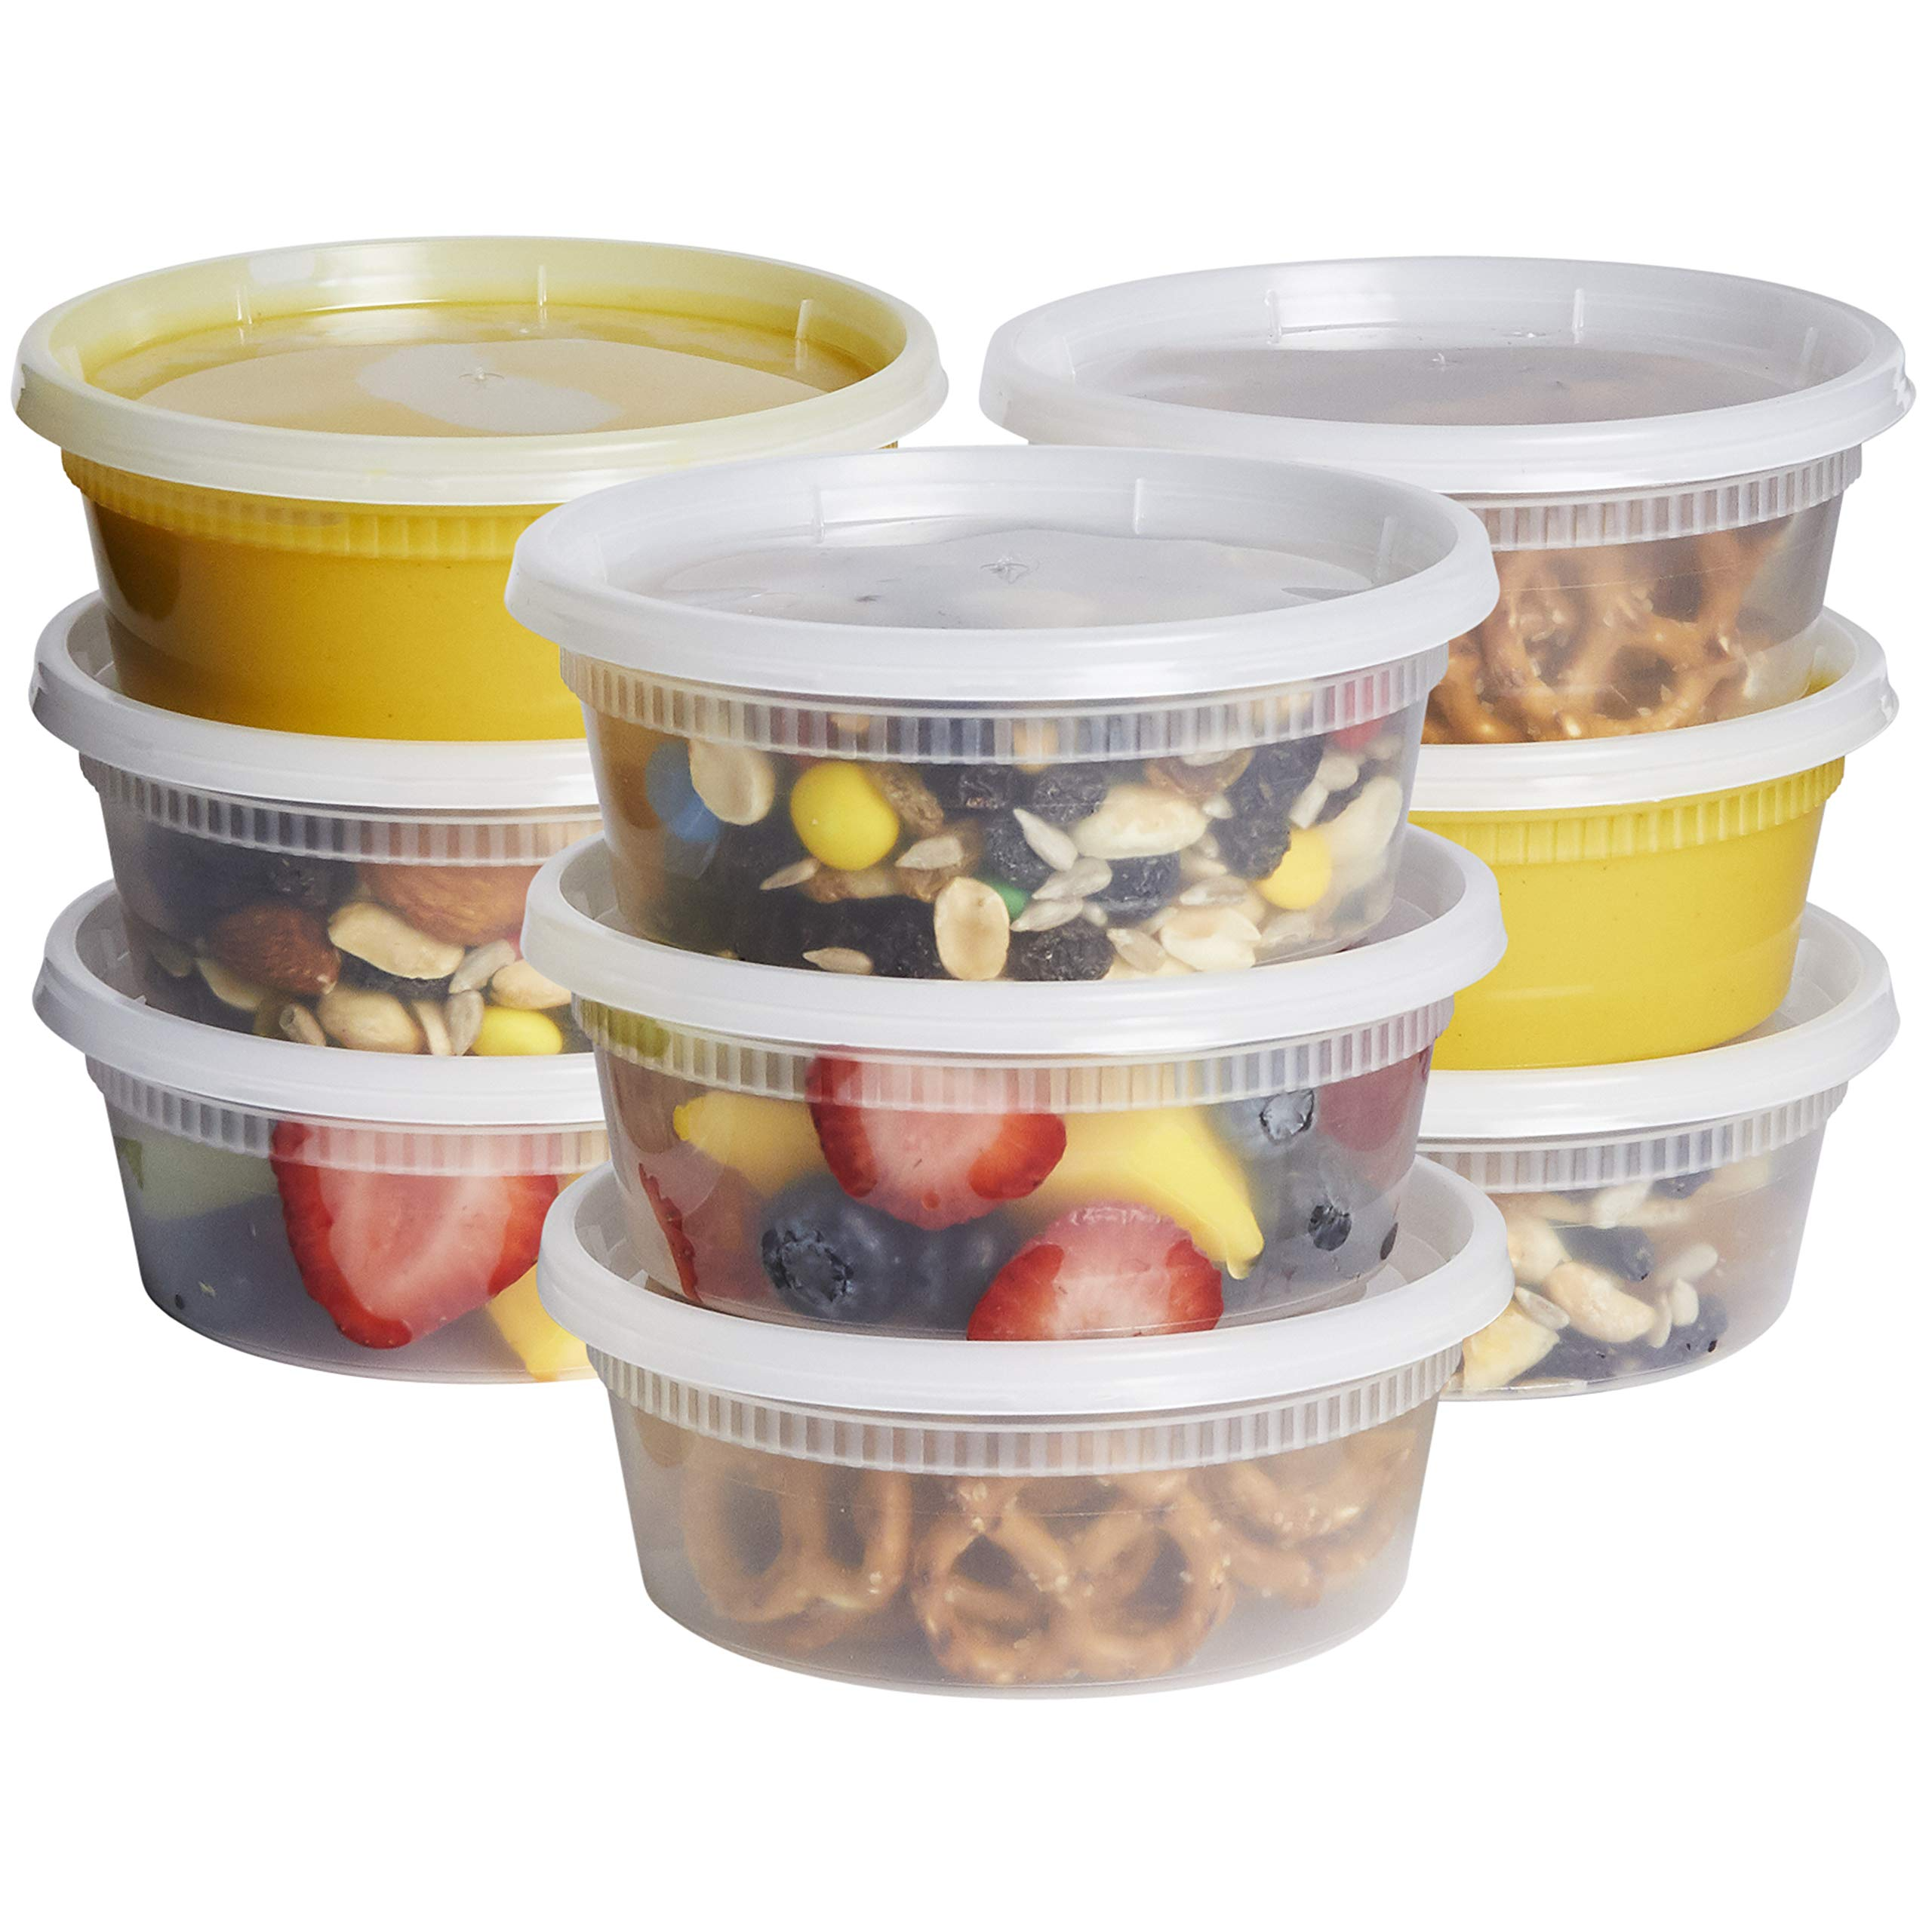 8 oz. Plastic Deli Food Storage Containers with Airtight Lids [48 Sets]